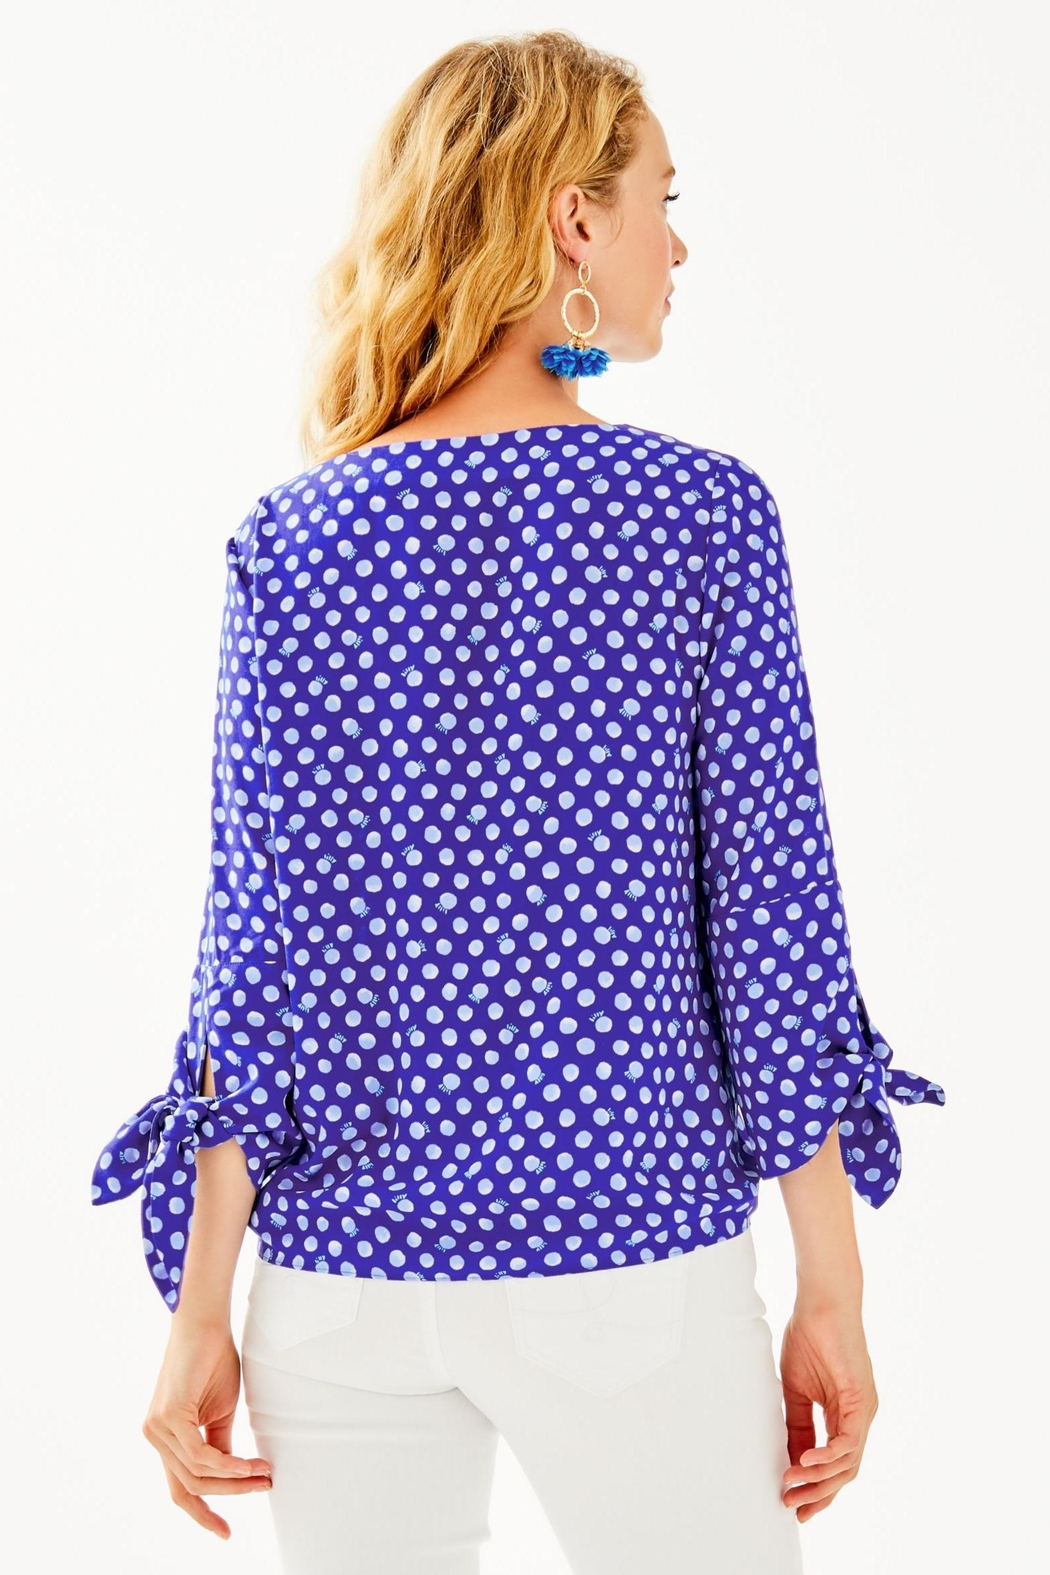 Lilly Pulitzer Langston Top - Front Full Image